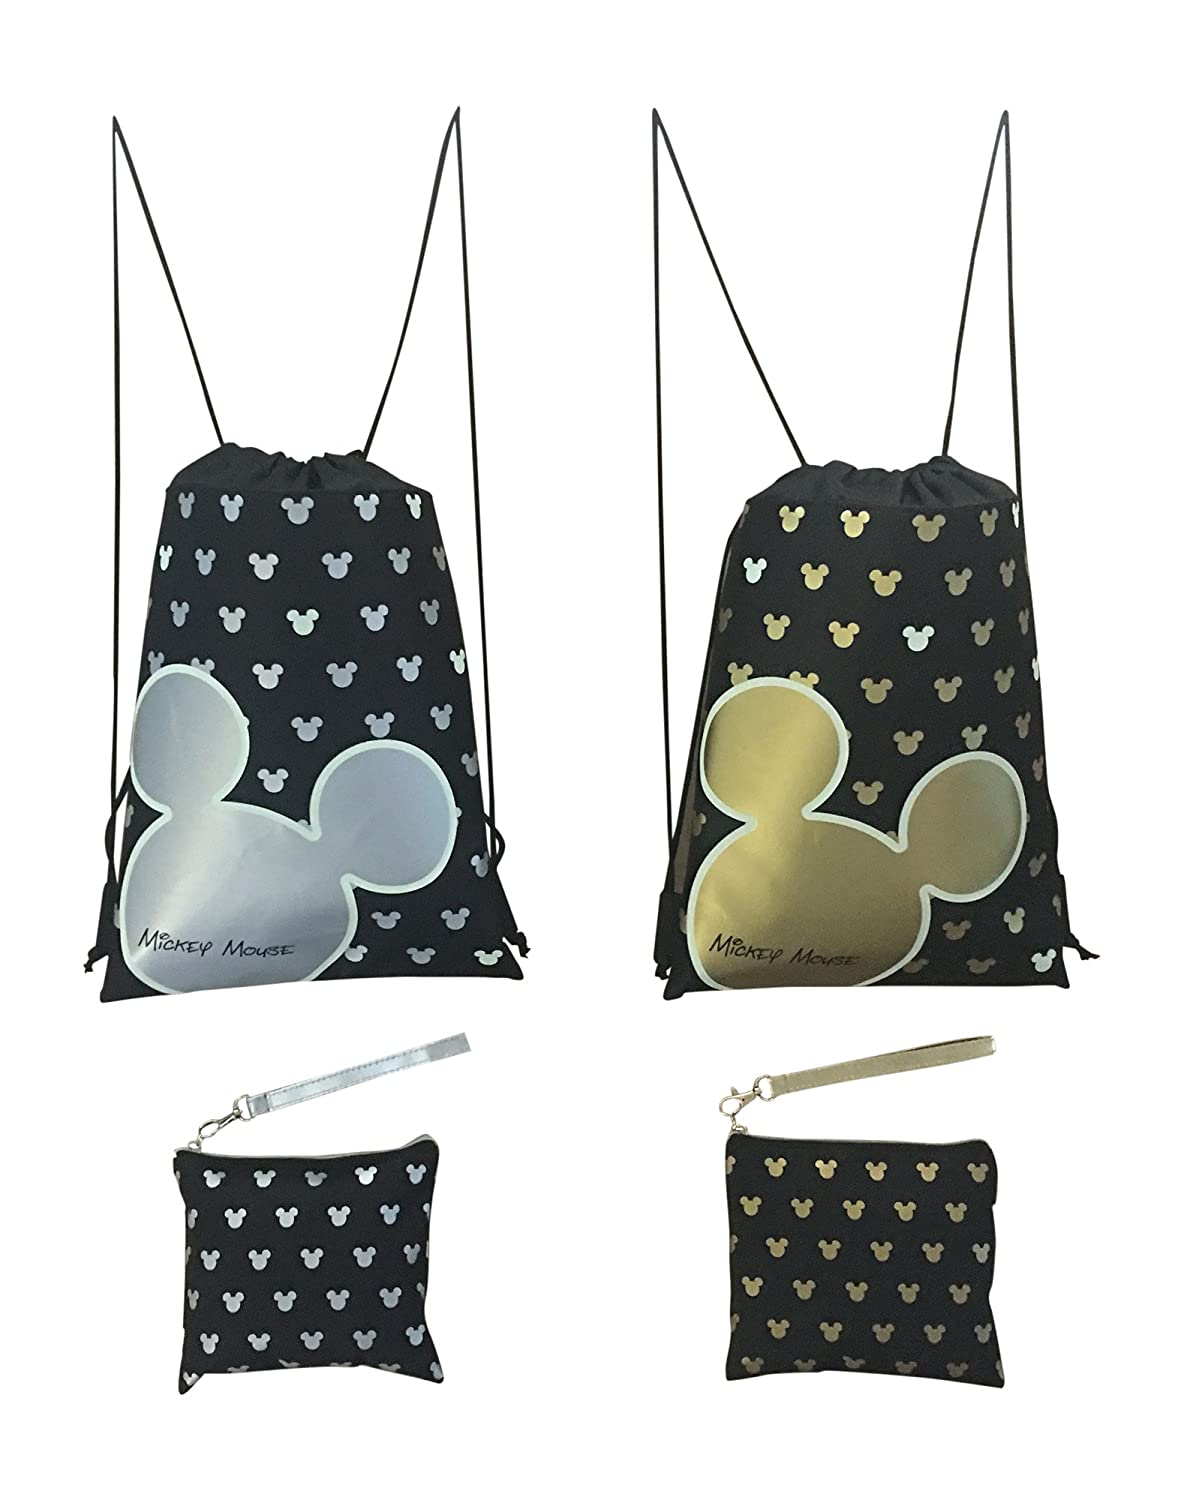 6361988c8a chic Disney Mickey Mouse Glow in the Dark Drawstring Backpack Pack of 4  (Varied)